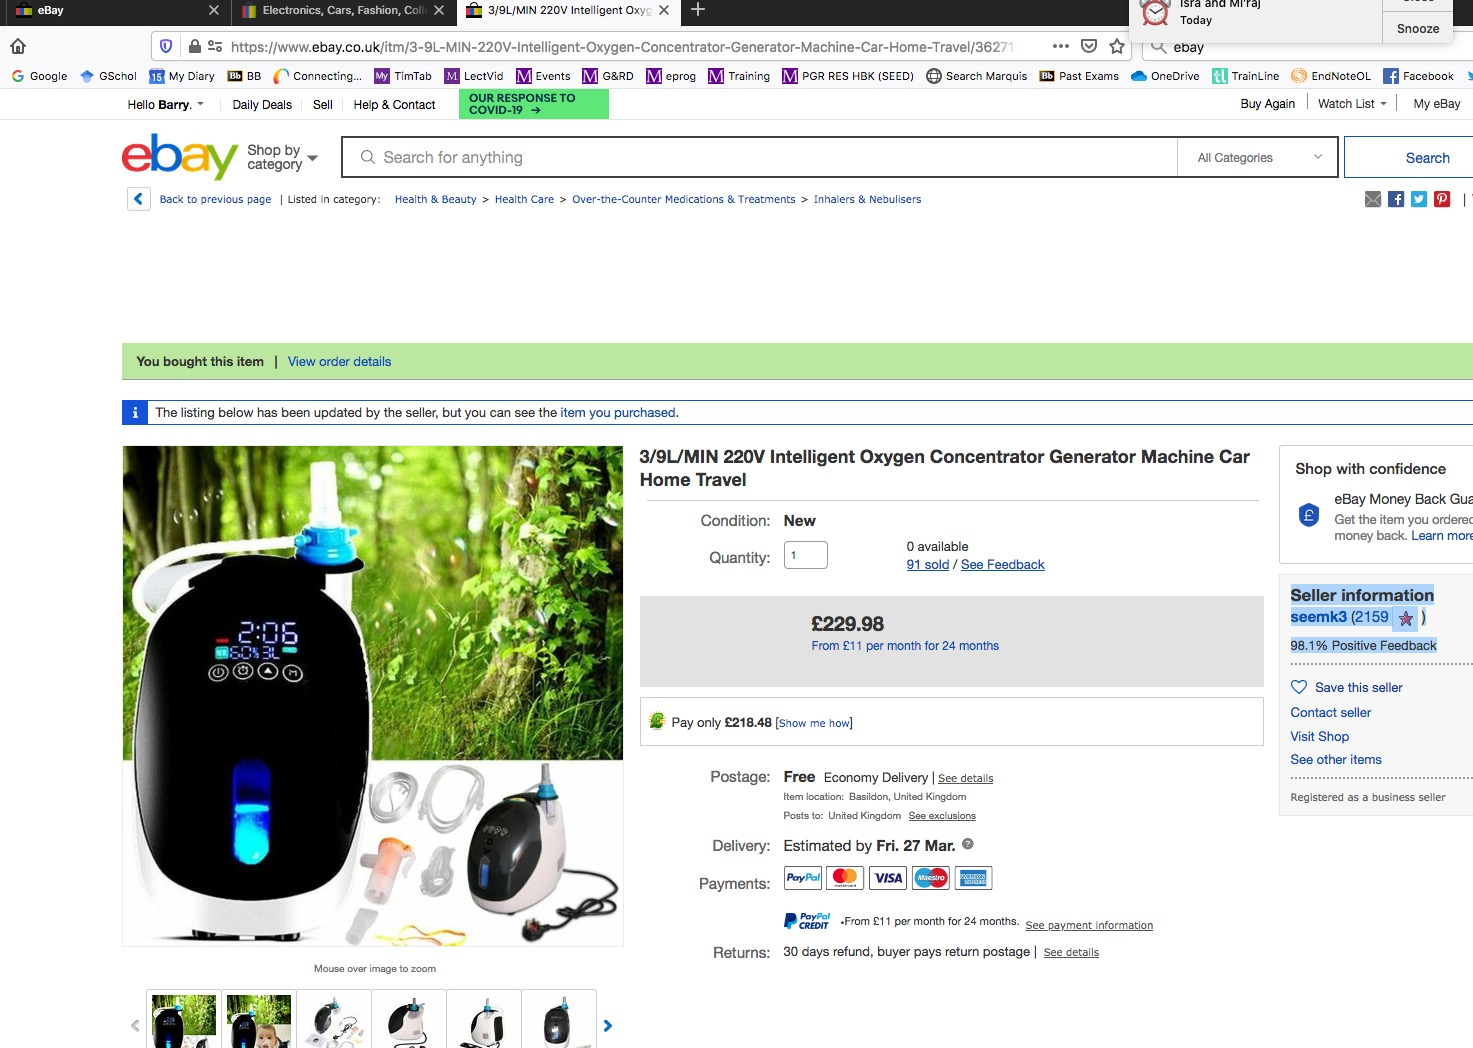 Vertebrate On Twitter Hi Ebay Ebay Uk Askebay This Vendor Is Still Offering The Goods For Delivery This Month But At Nearly 40 Higher Price Is That Really Why They Are Pressing Me